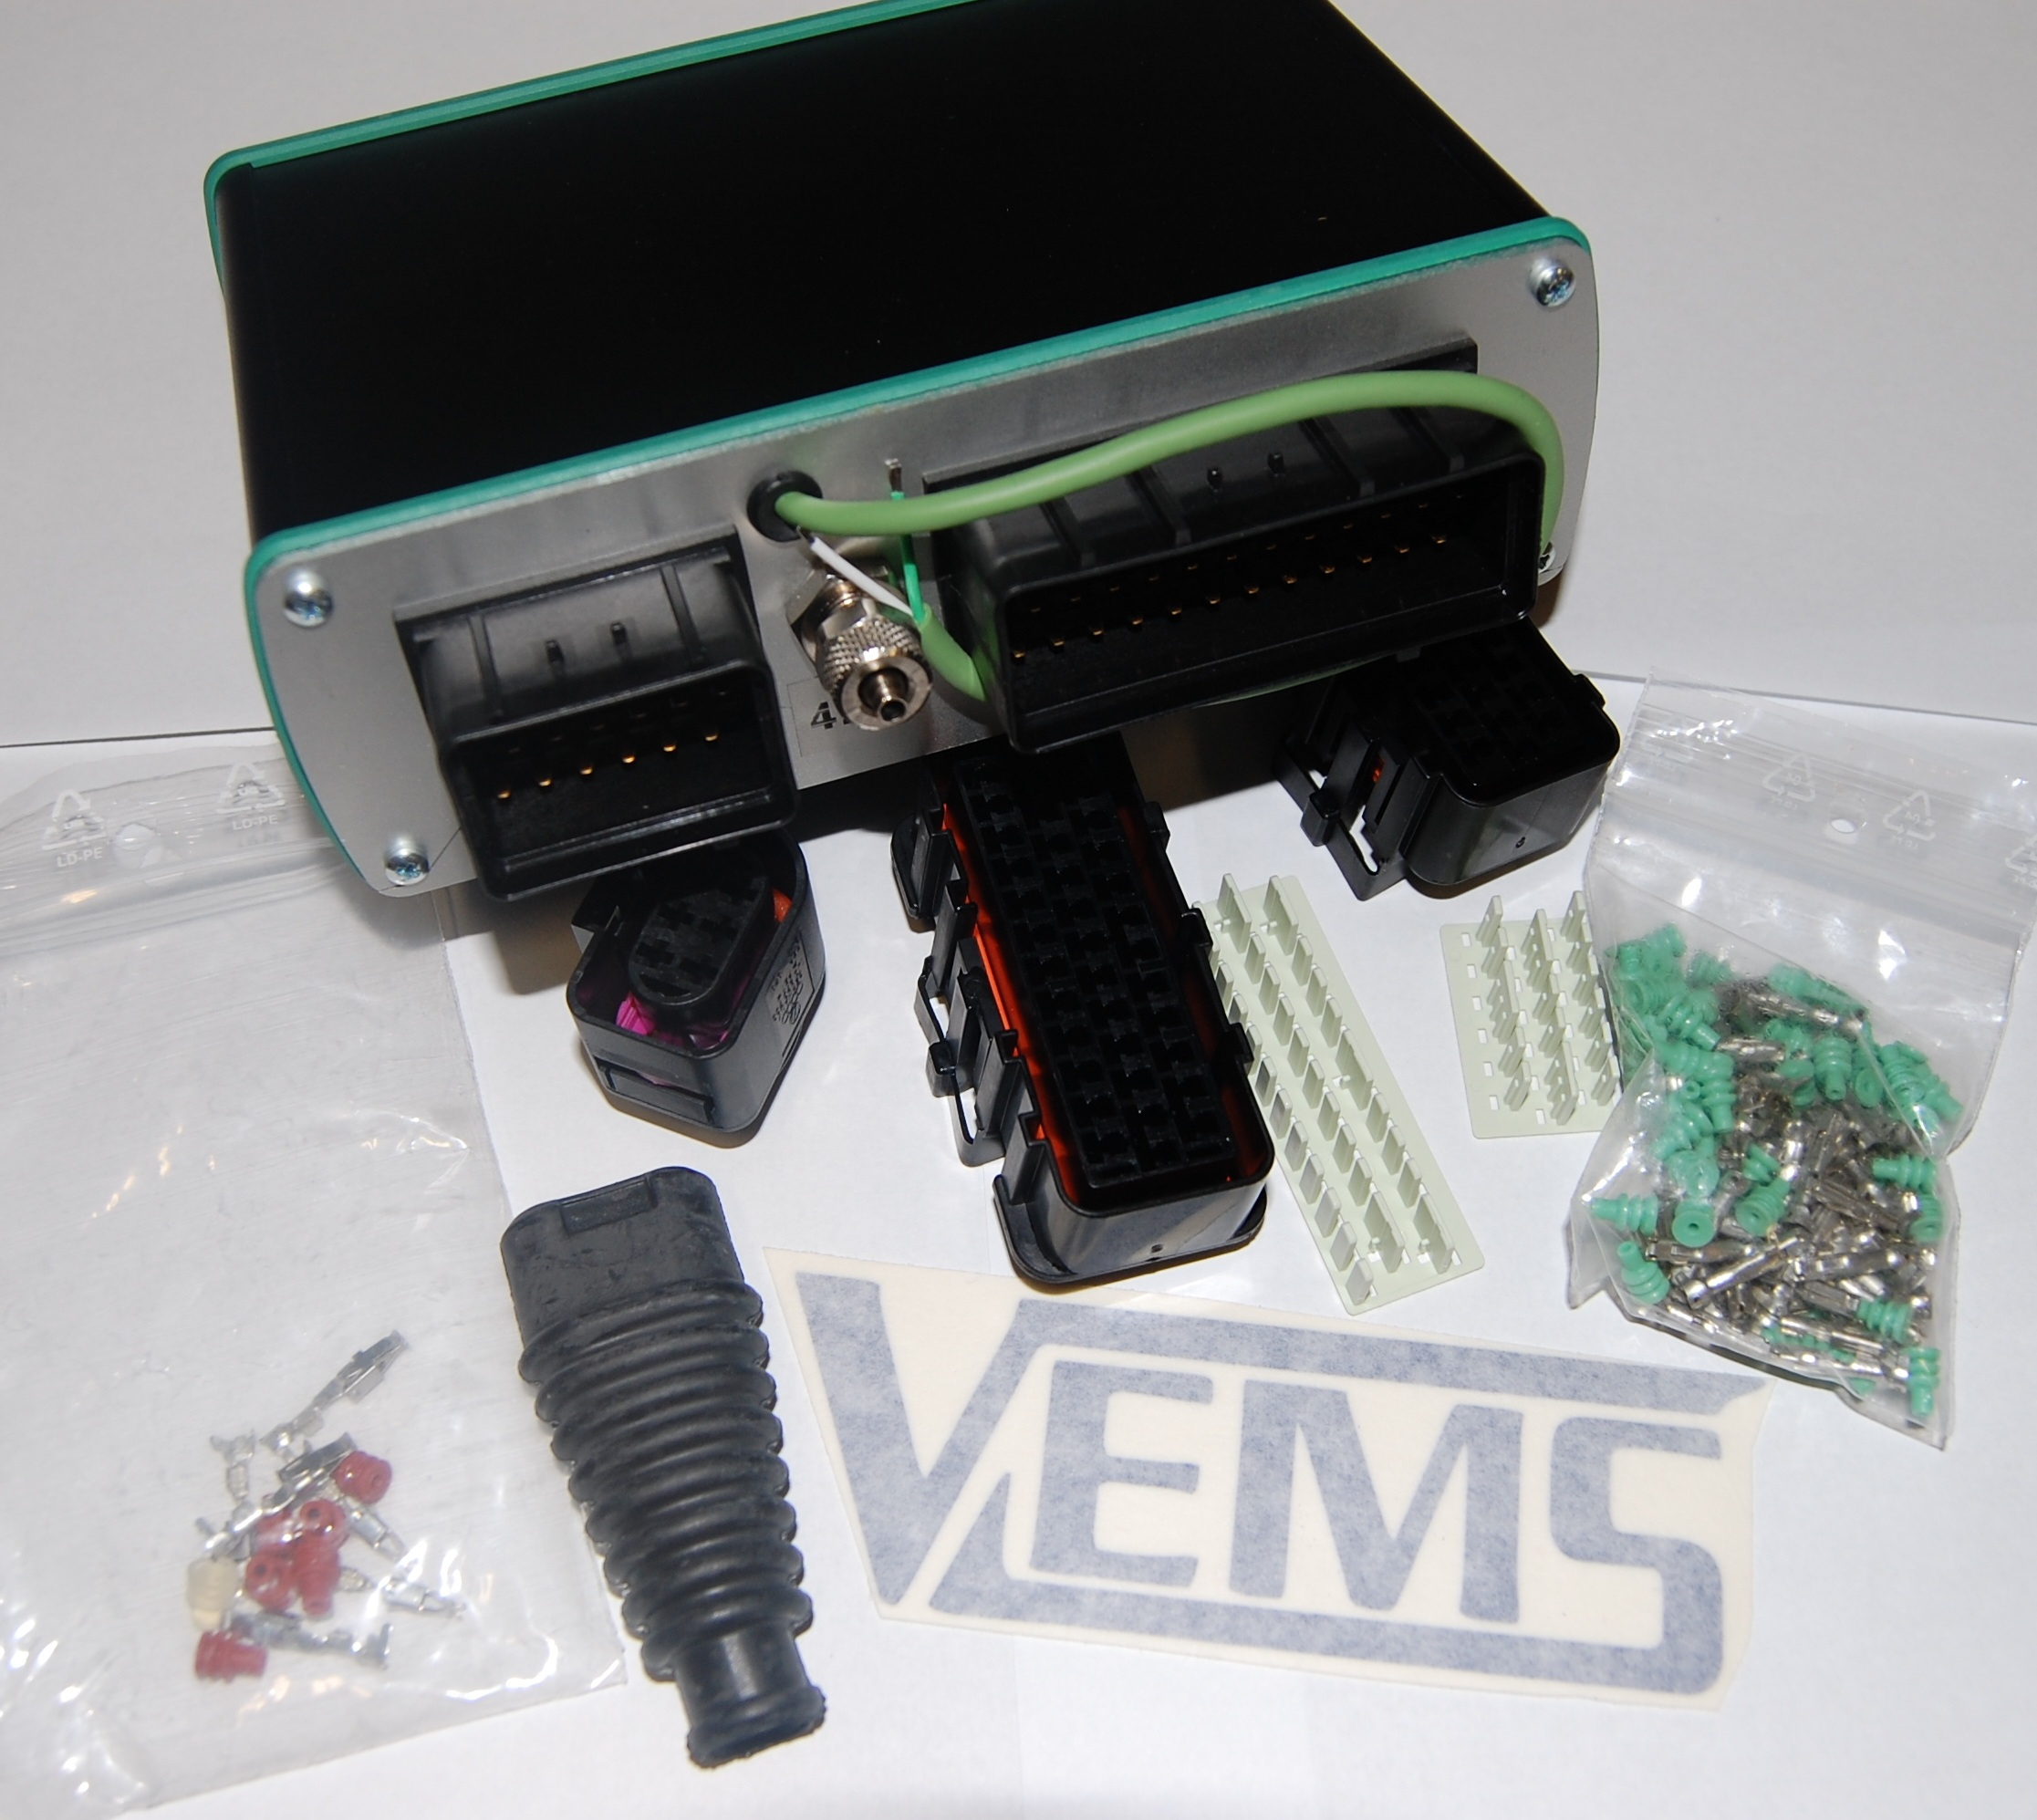 Vems Us Versatile Engine Management Systems Porsche 944 Ecu Wiring Basic Kit